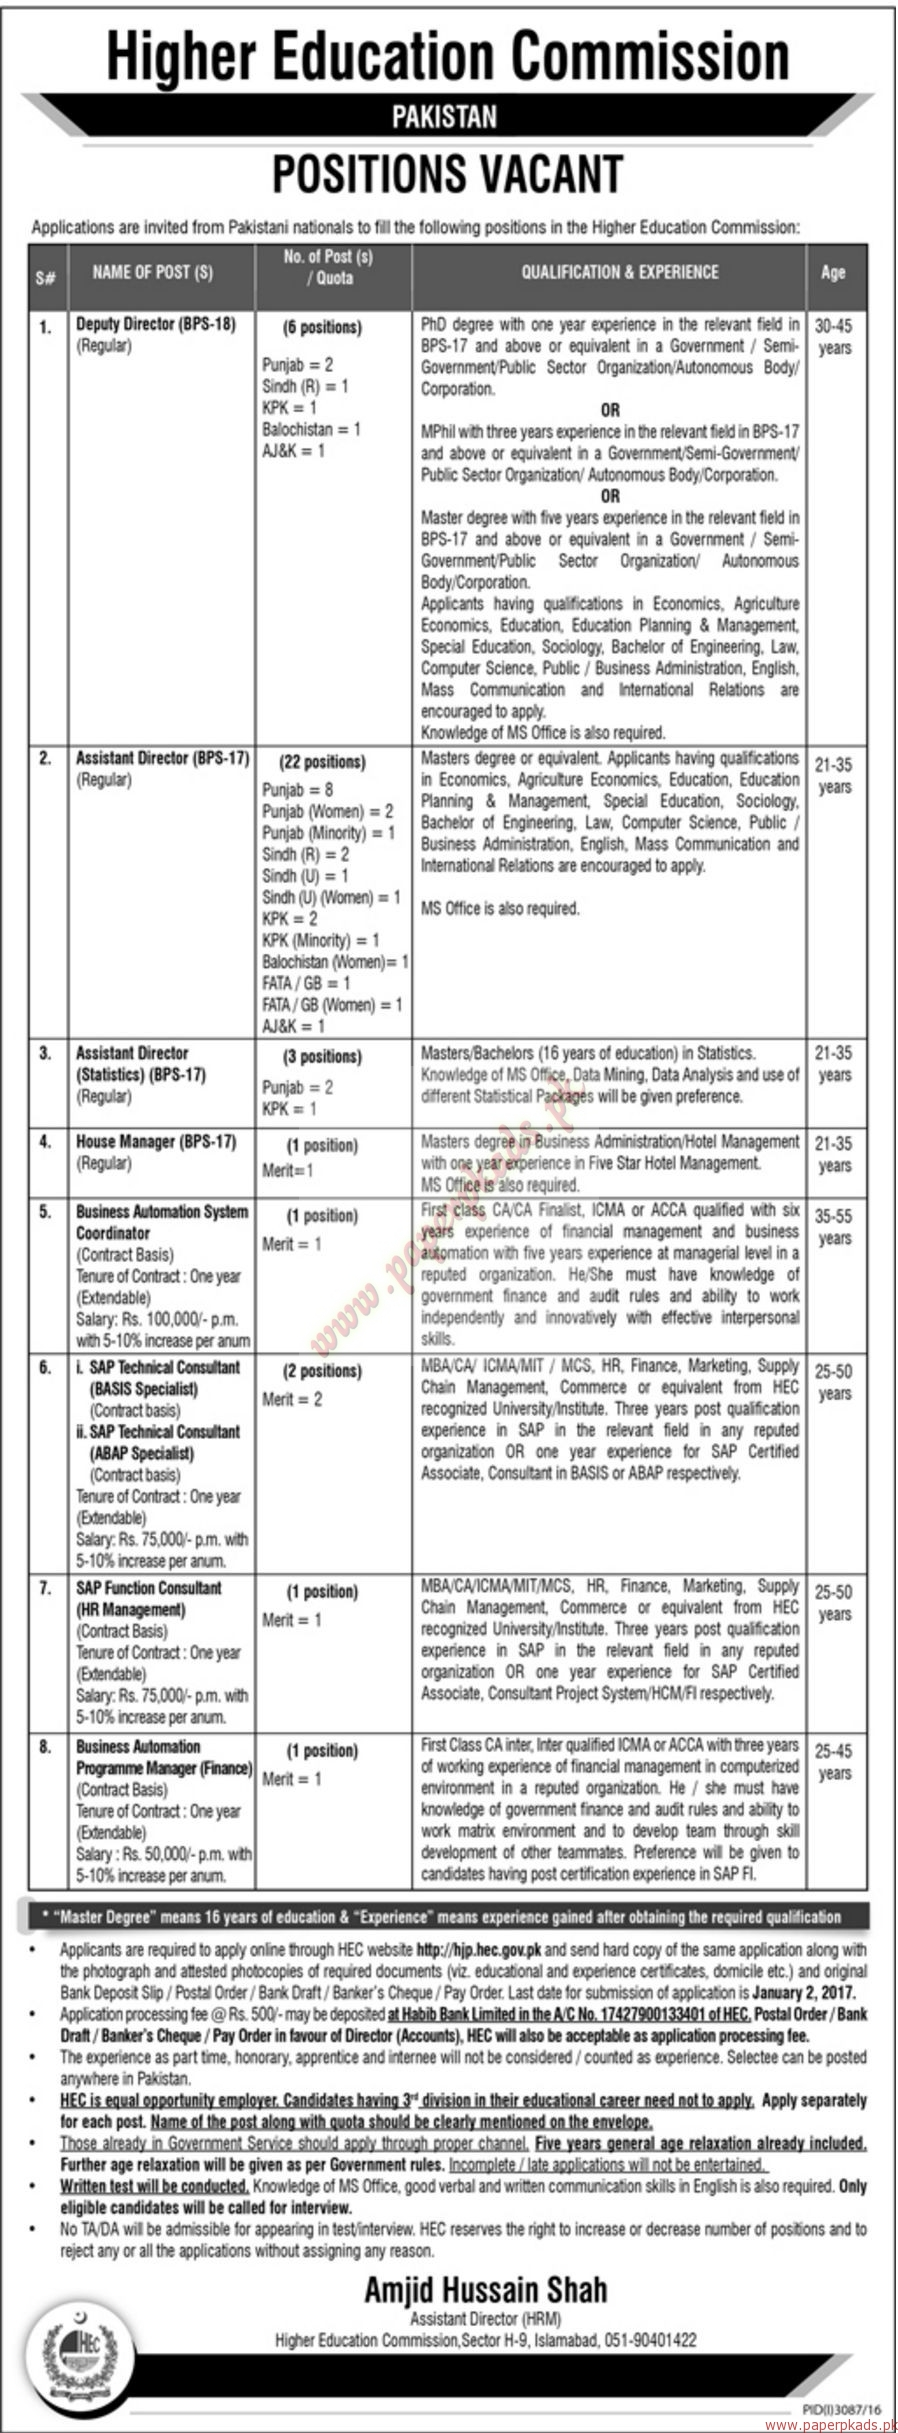 higher education commission jobs dunya jobs ads  higher education commission jobs dunya jobs ads 18 2016